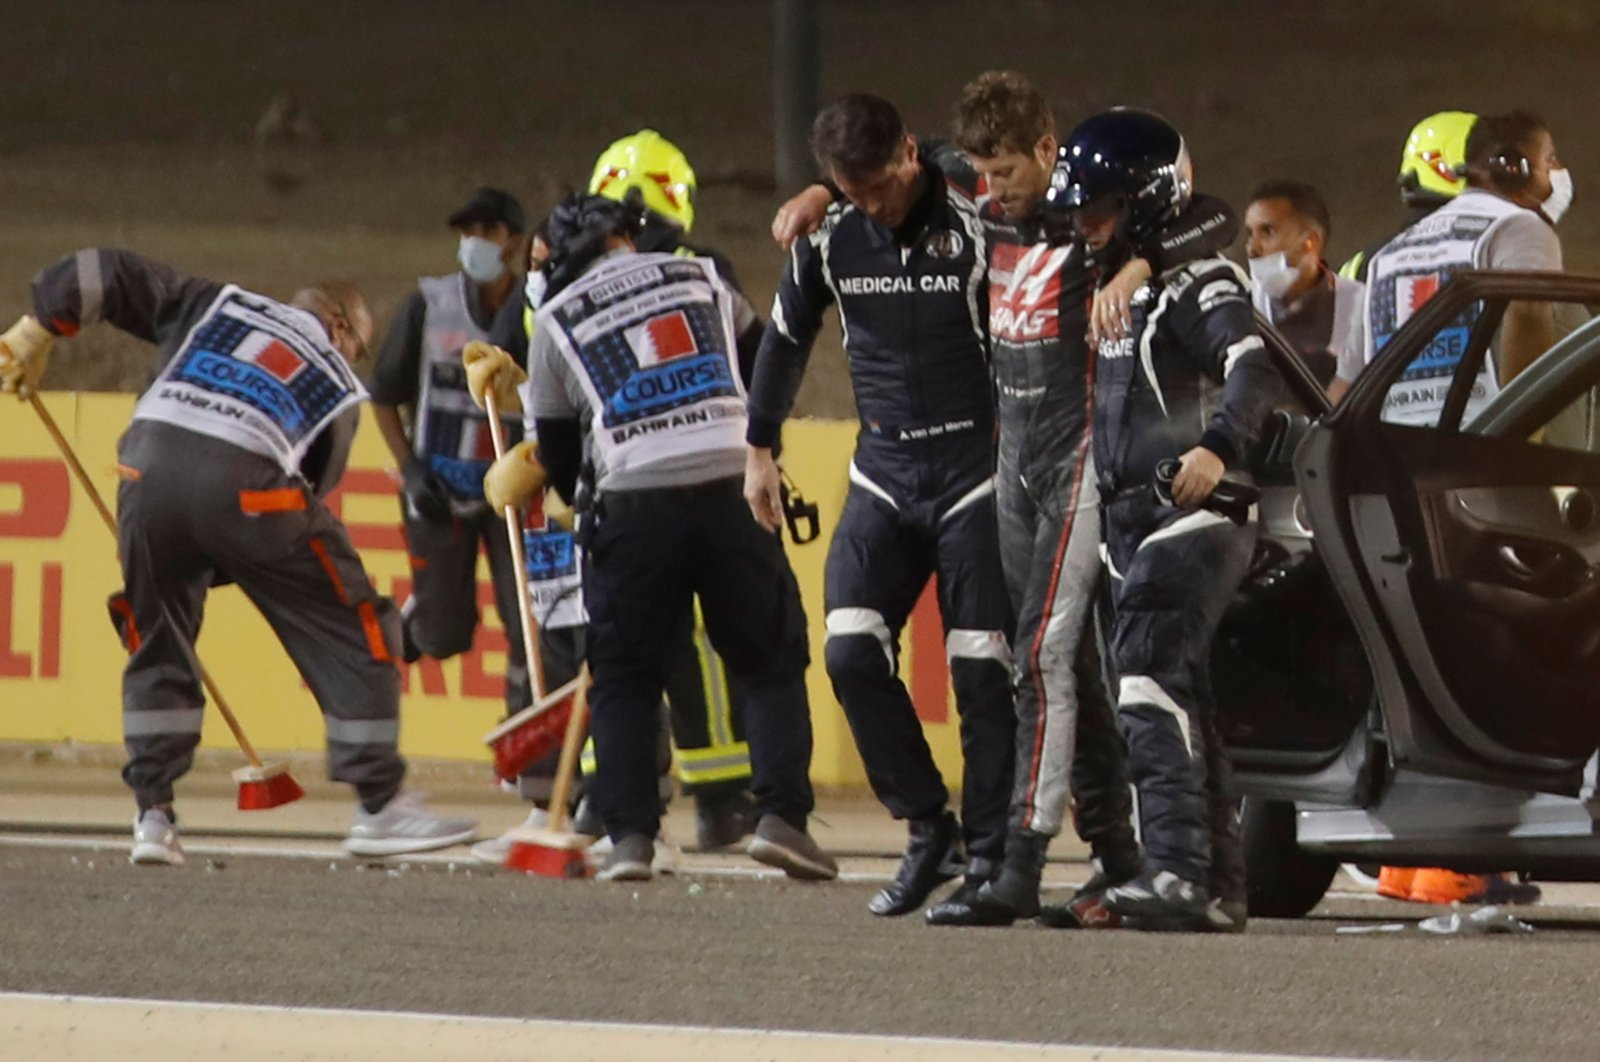 Stewards and medics attend to Romain Grosjean after the crash, in Sakhir, Bahrain, Nov. 29, 2020. (AFP Photo)